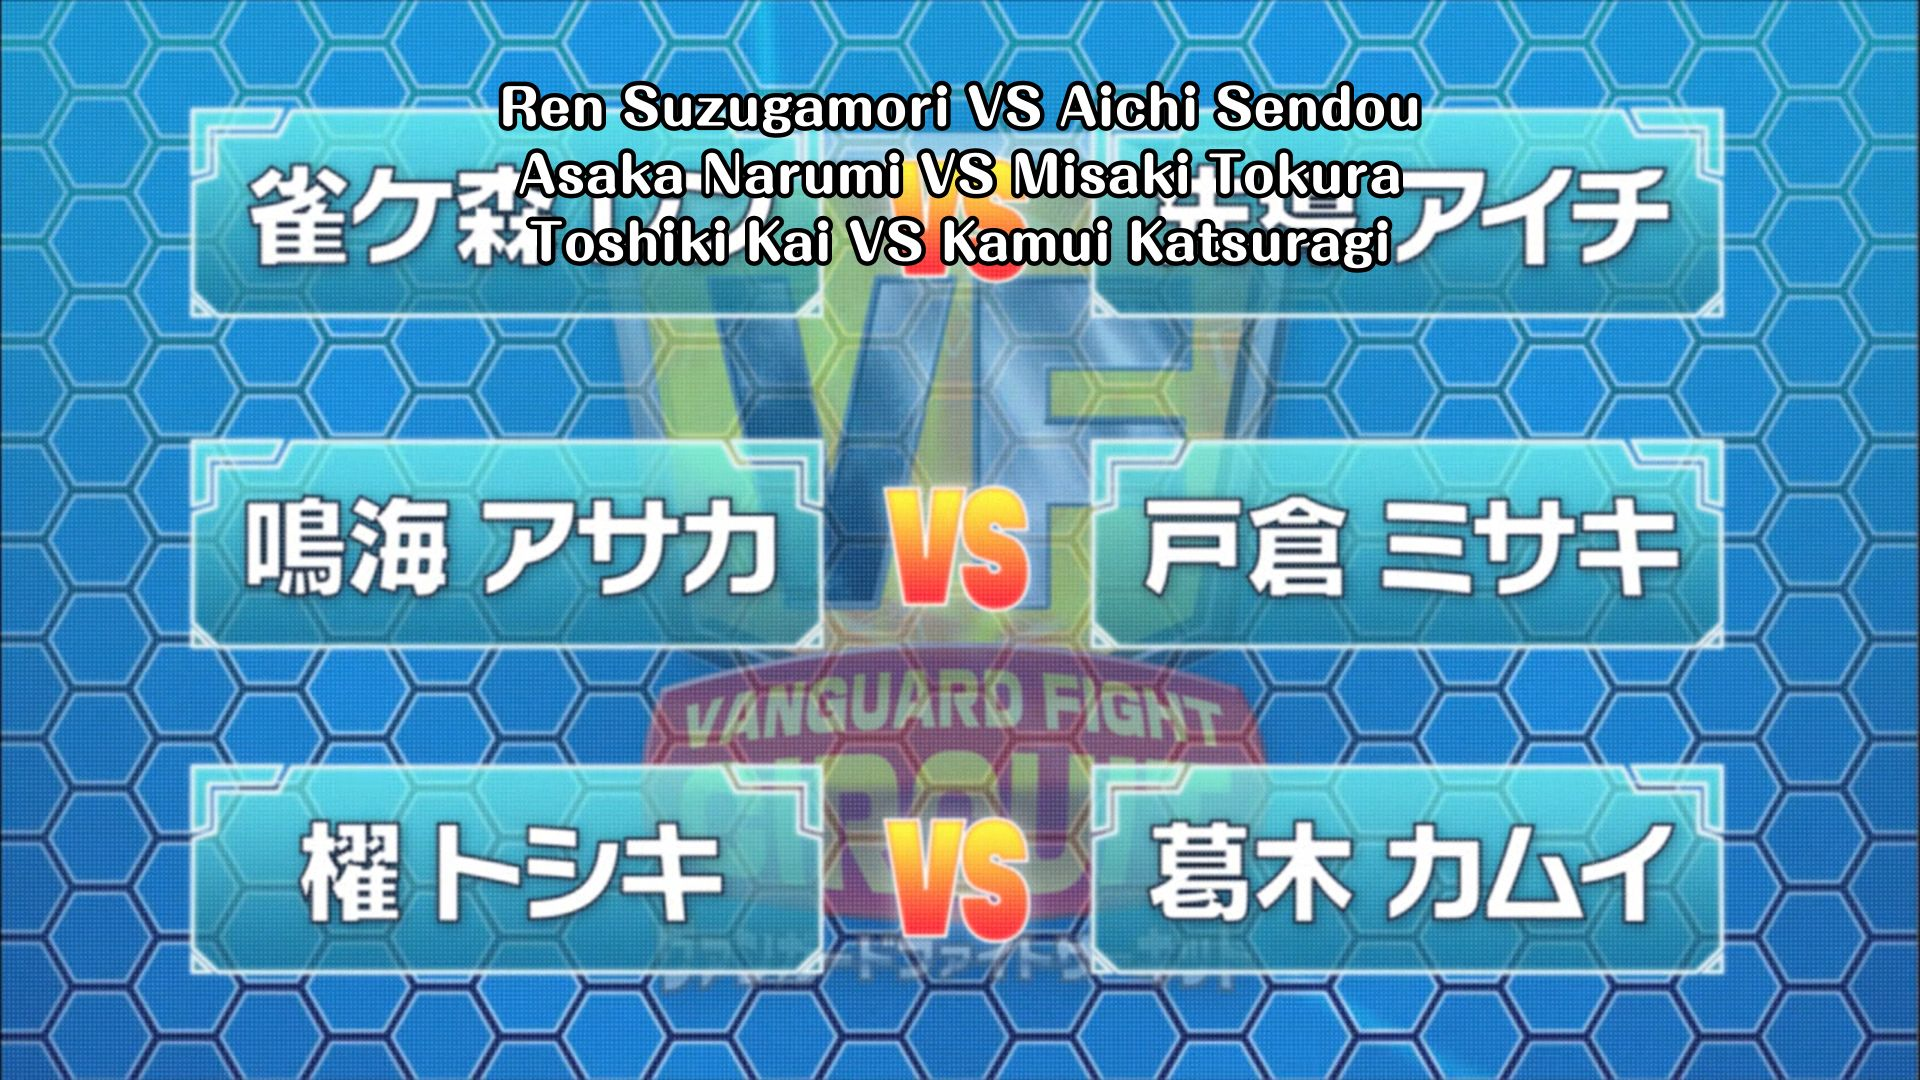 The second season could have been better with a more radical match-ups though. How about Aichi vs. Asaka and Misaki vs. Ren?